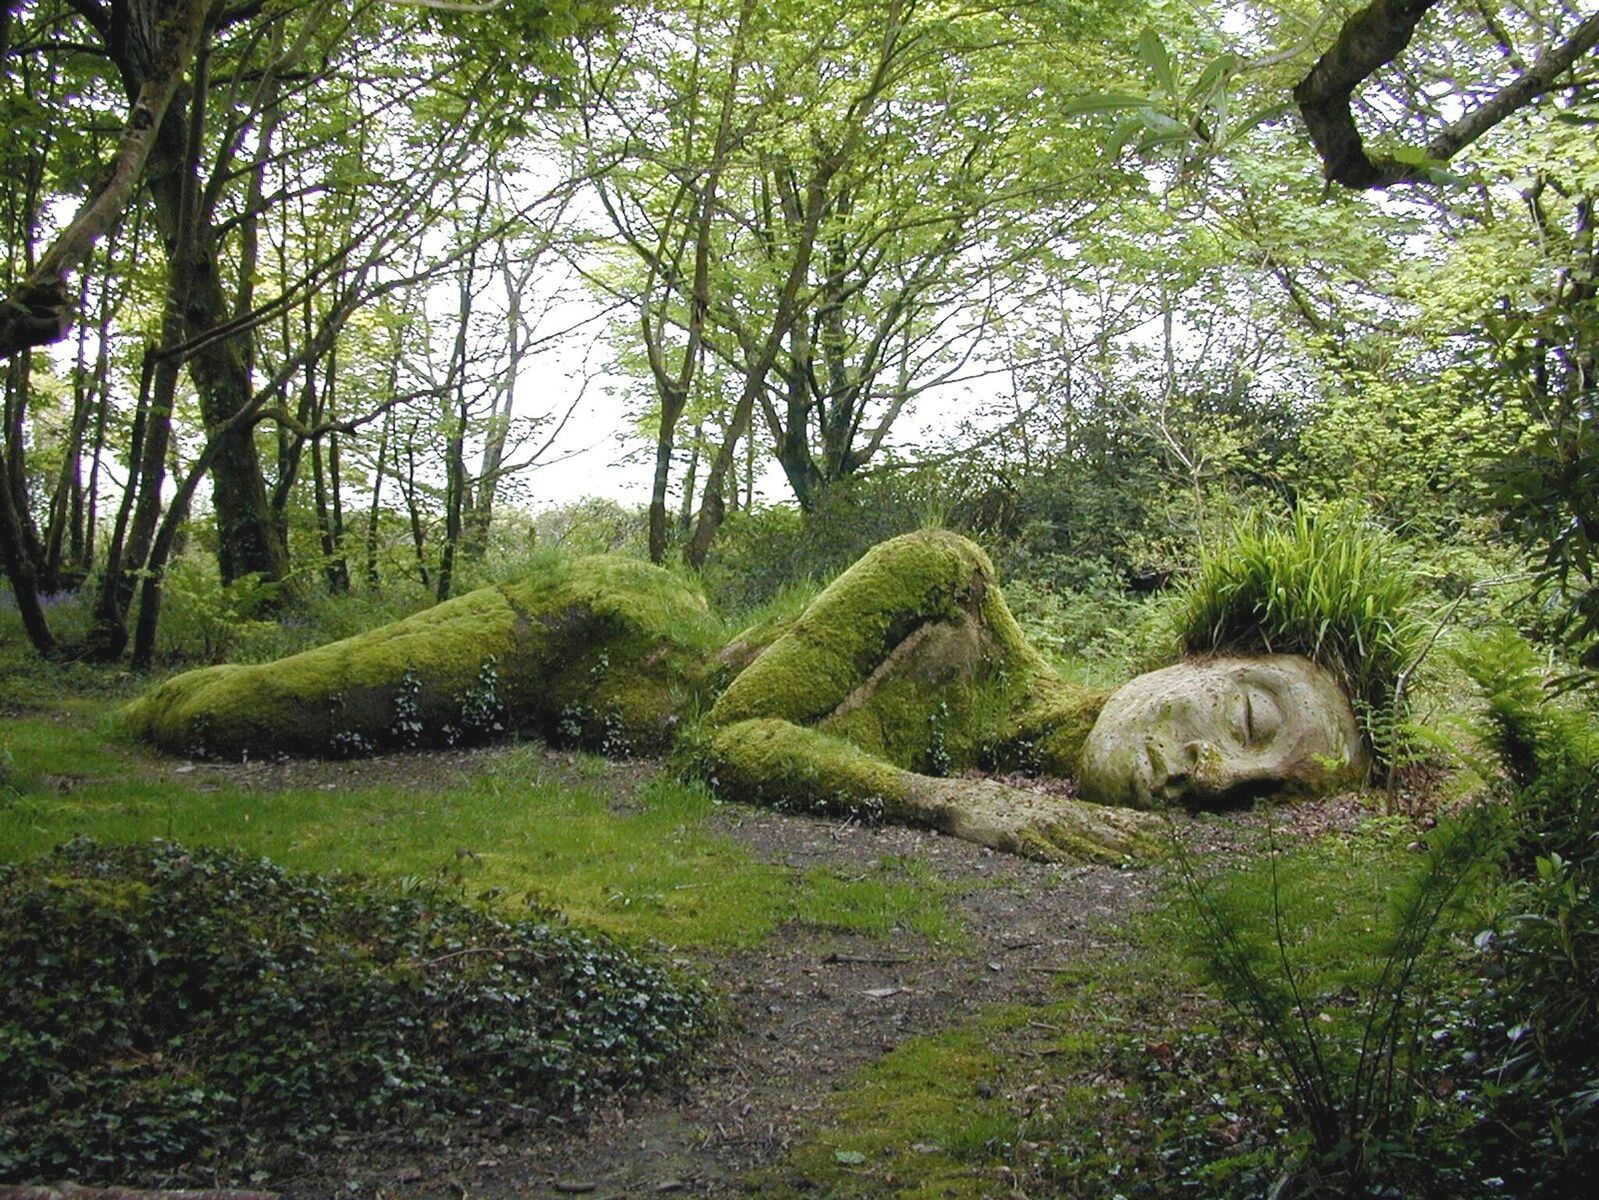 9be701ce6e7e21eb2b39ddad79c22455 - Lost Gardens Of Heligan To Eden Project